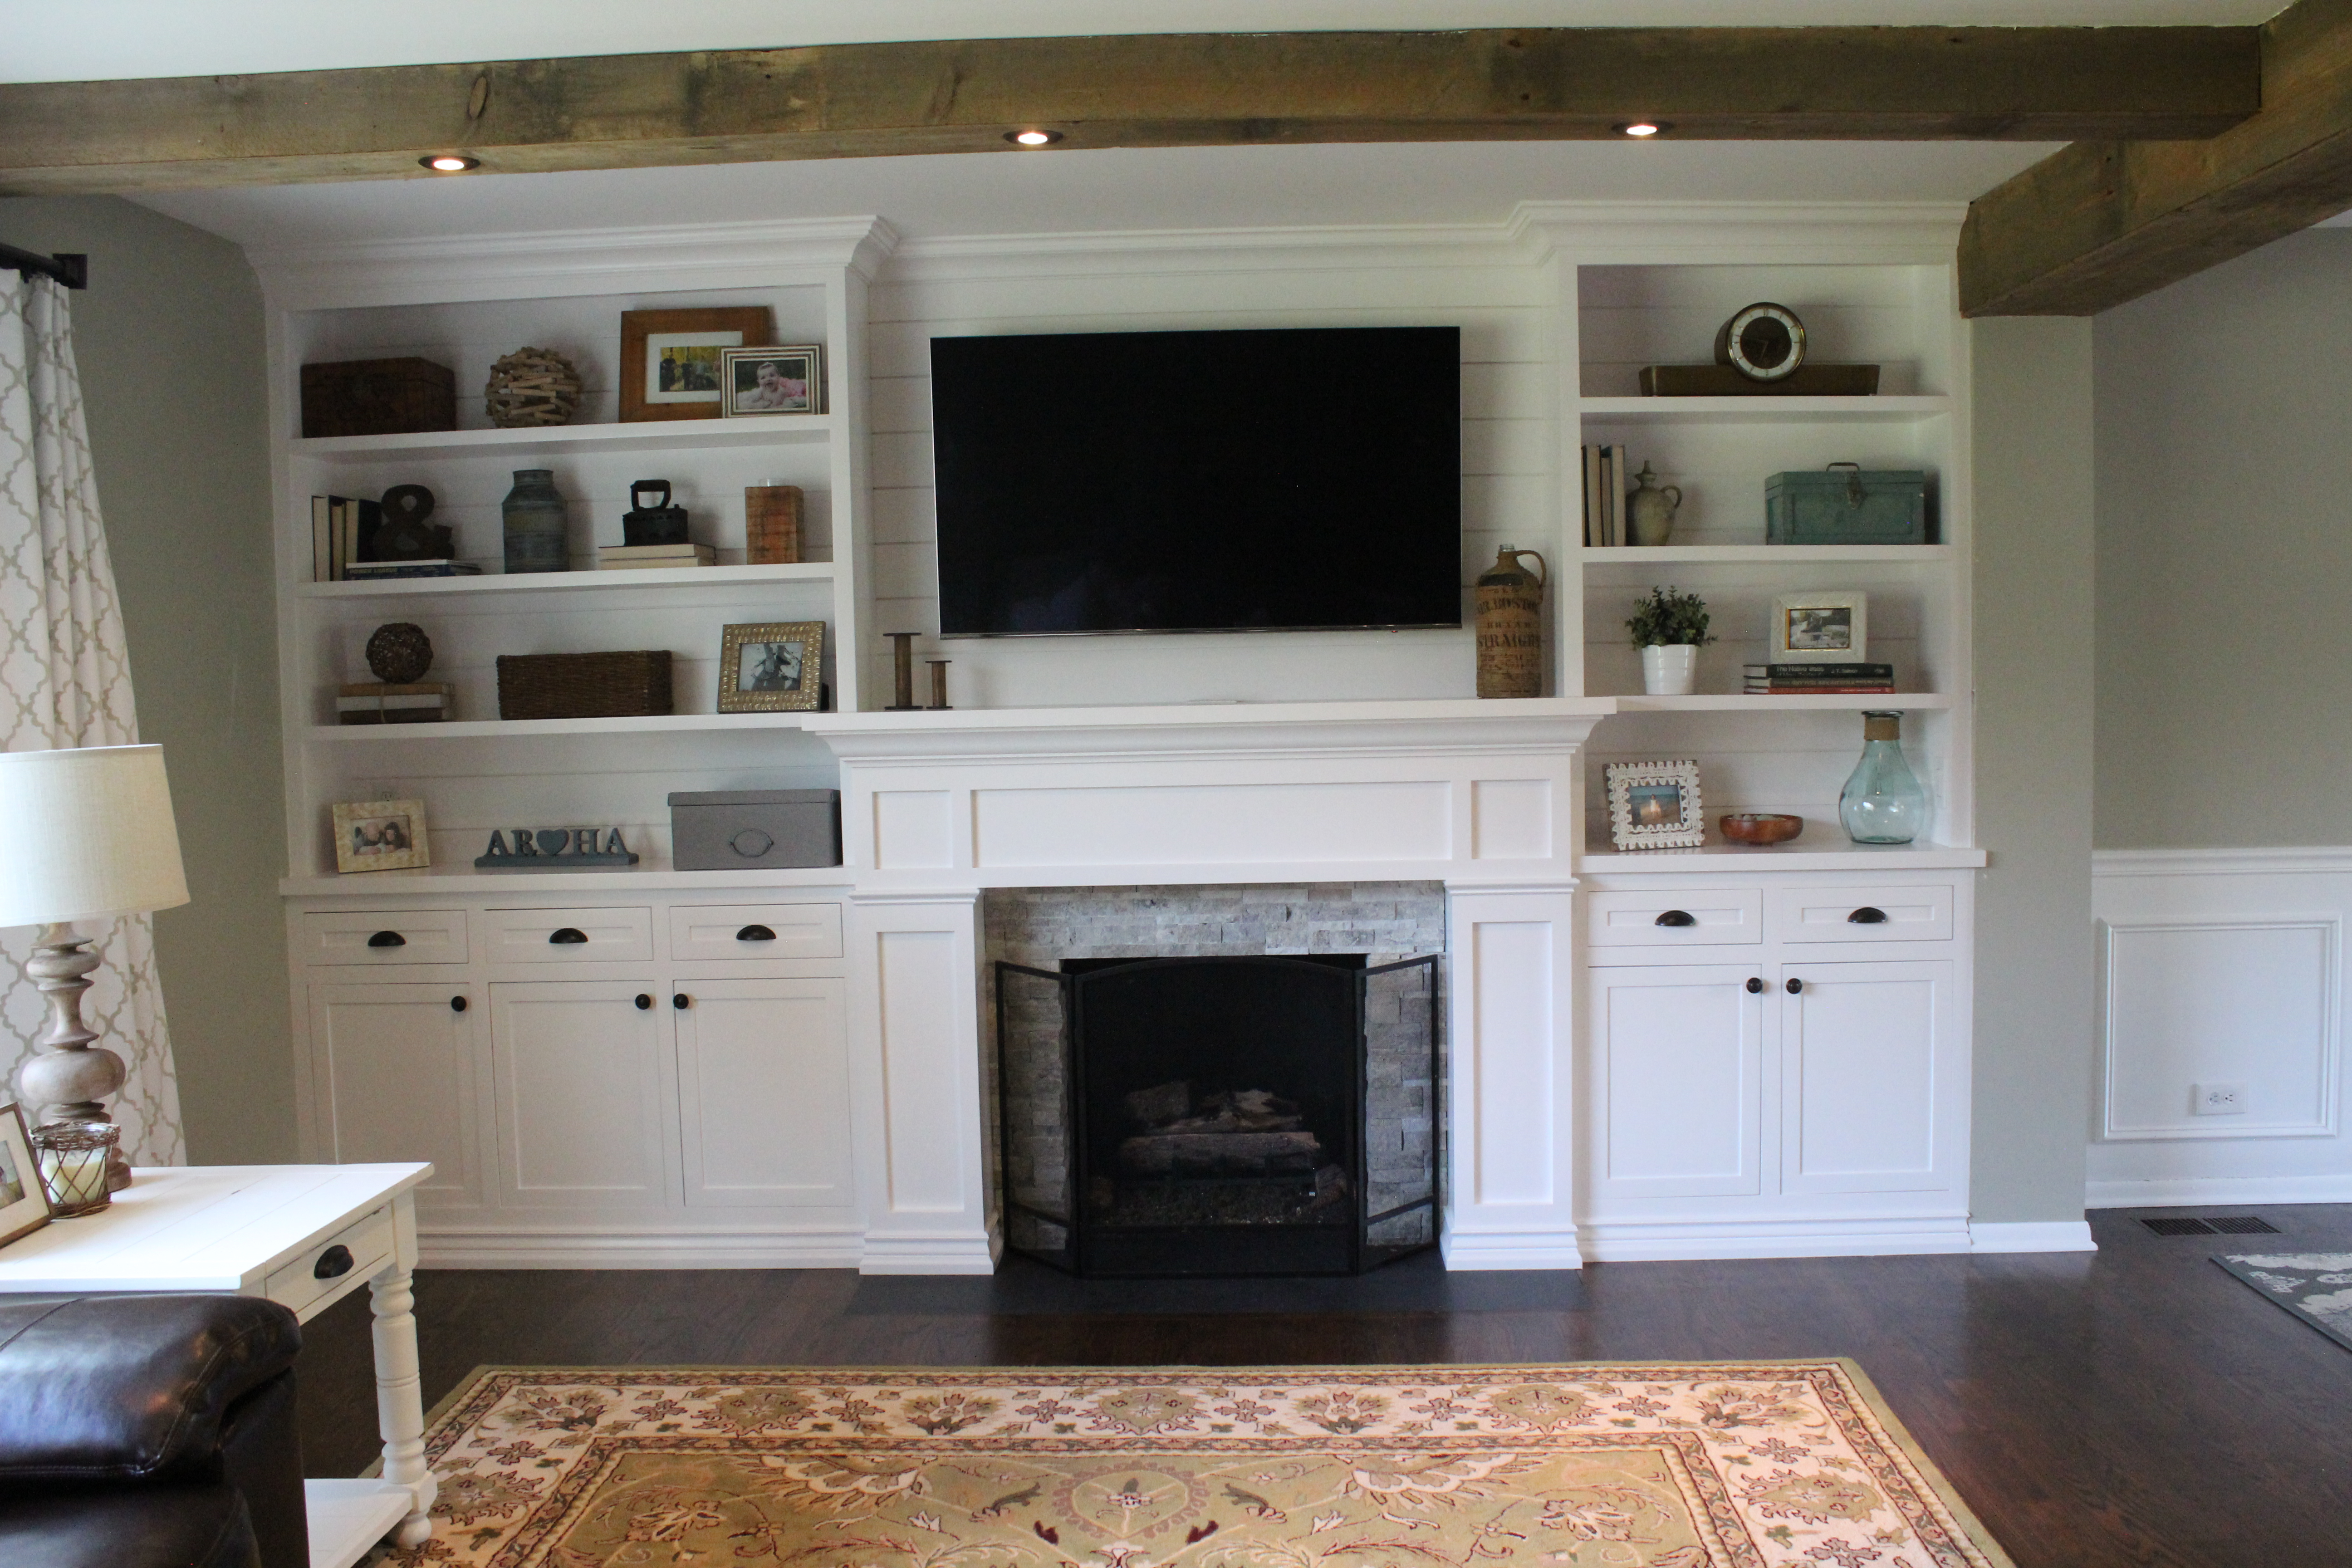 12 oaks two diy addicts transforming a home and 5 acre property in need of some tlc. Black Bedroom Furniture Sets. Home Design Ideas